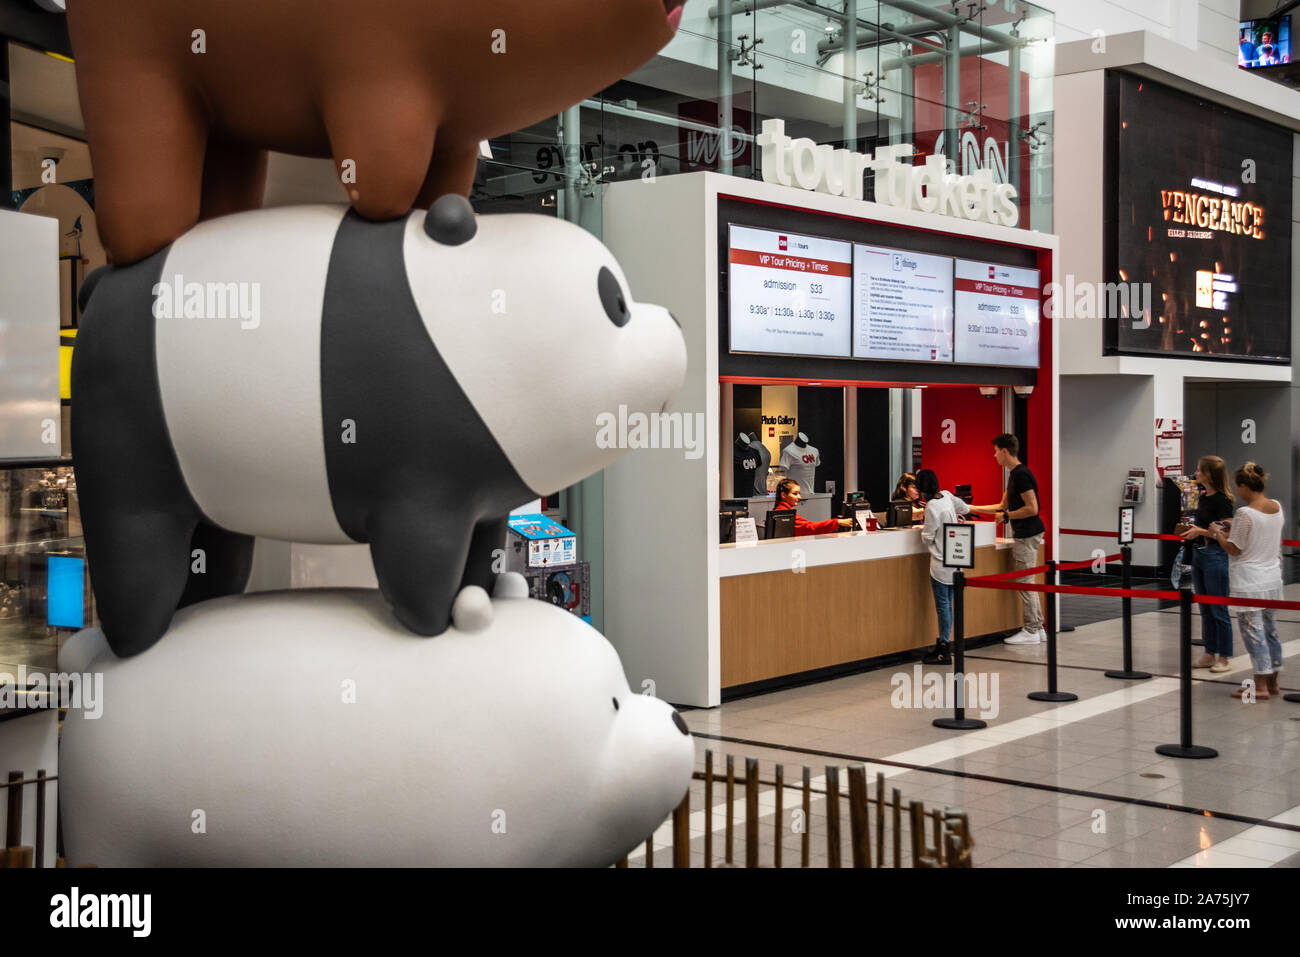 Cartoon Network Studio High Resolution Stock Photography And Images Alamy